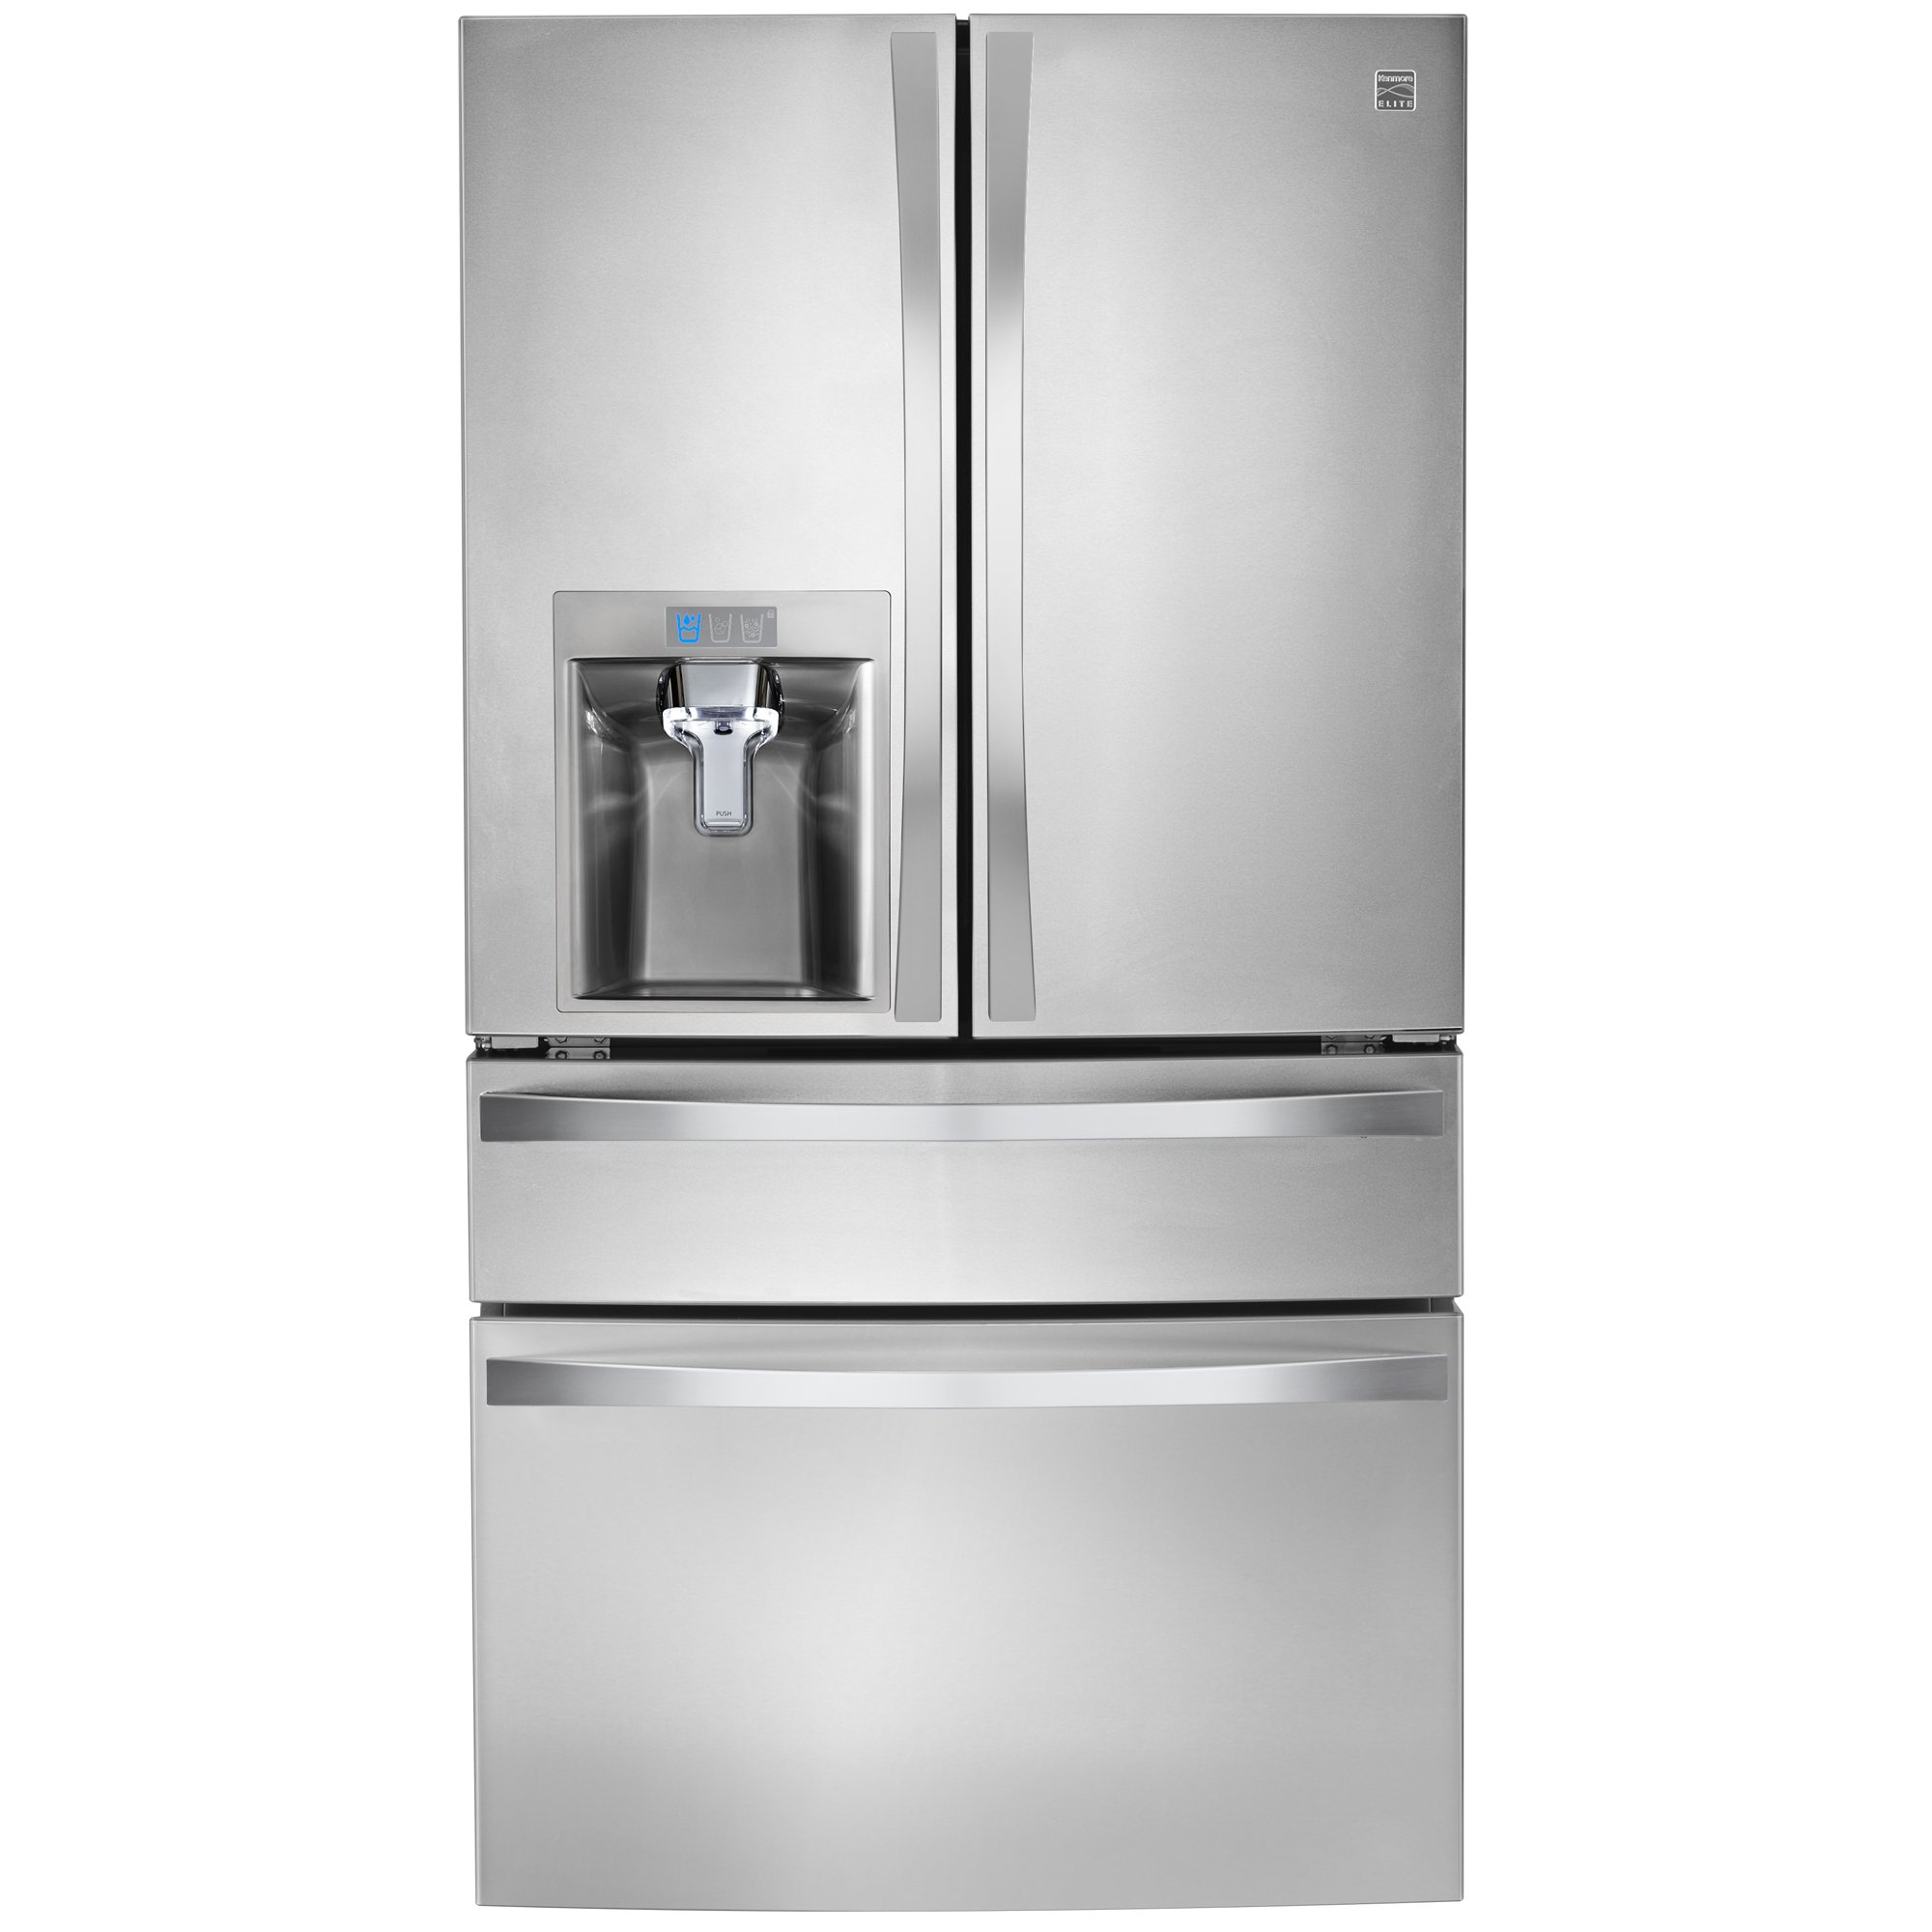 Kenmore elite 72483 refrigerators